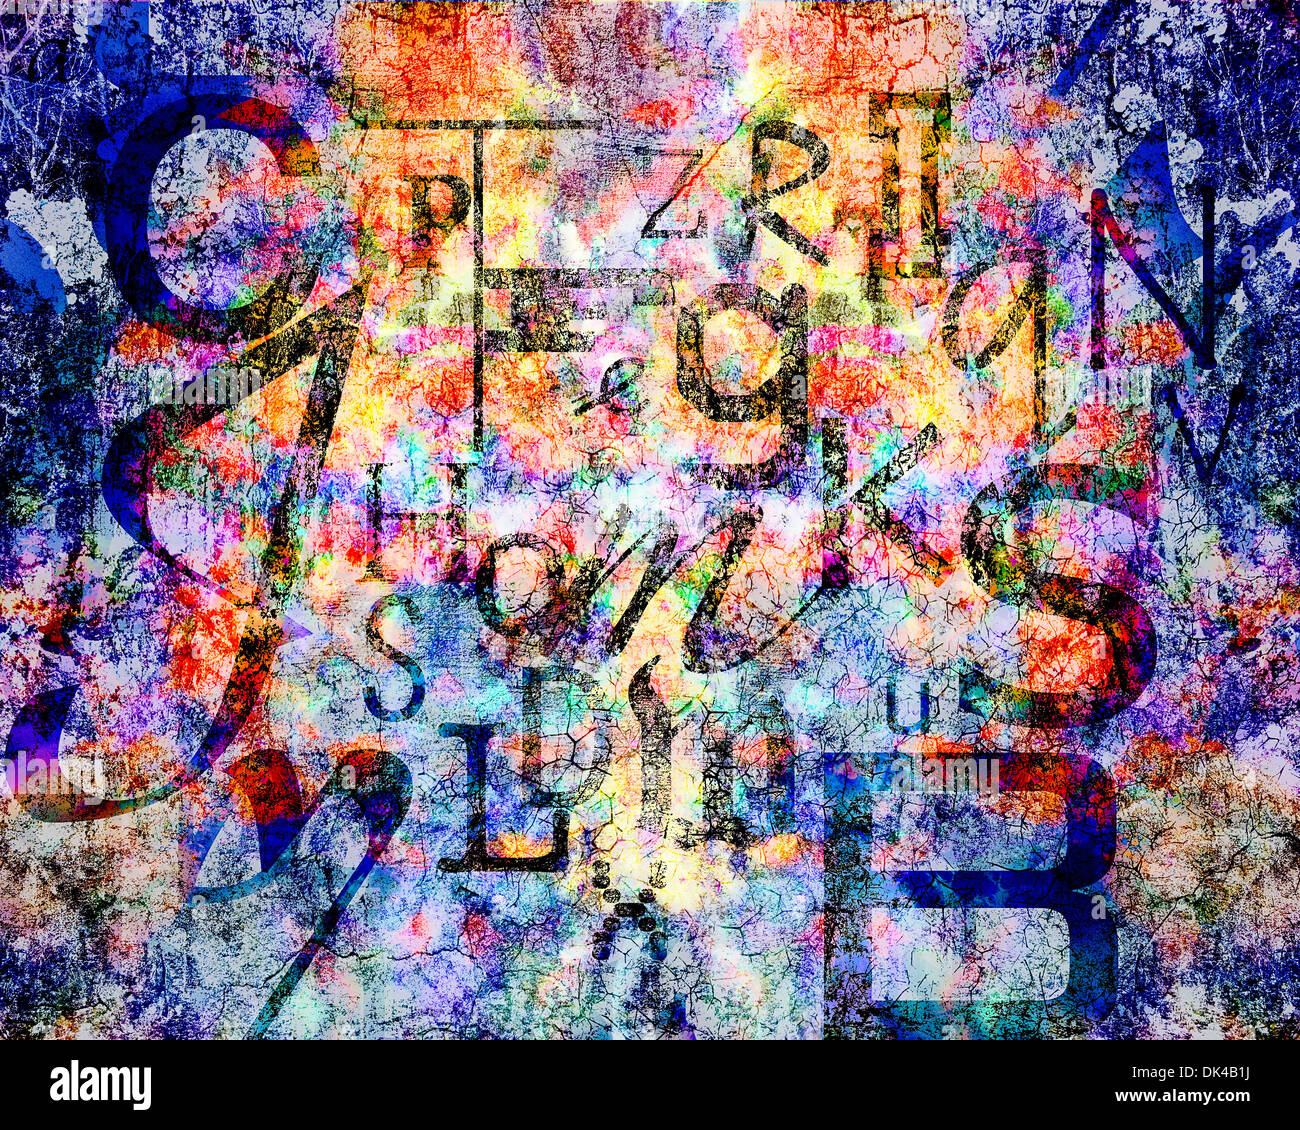 DIGITAL ART: Dyslexia Stock Photo